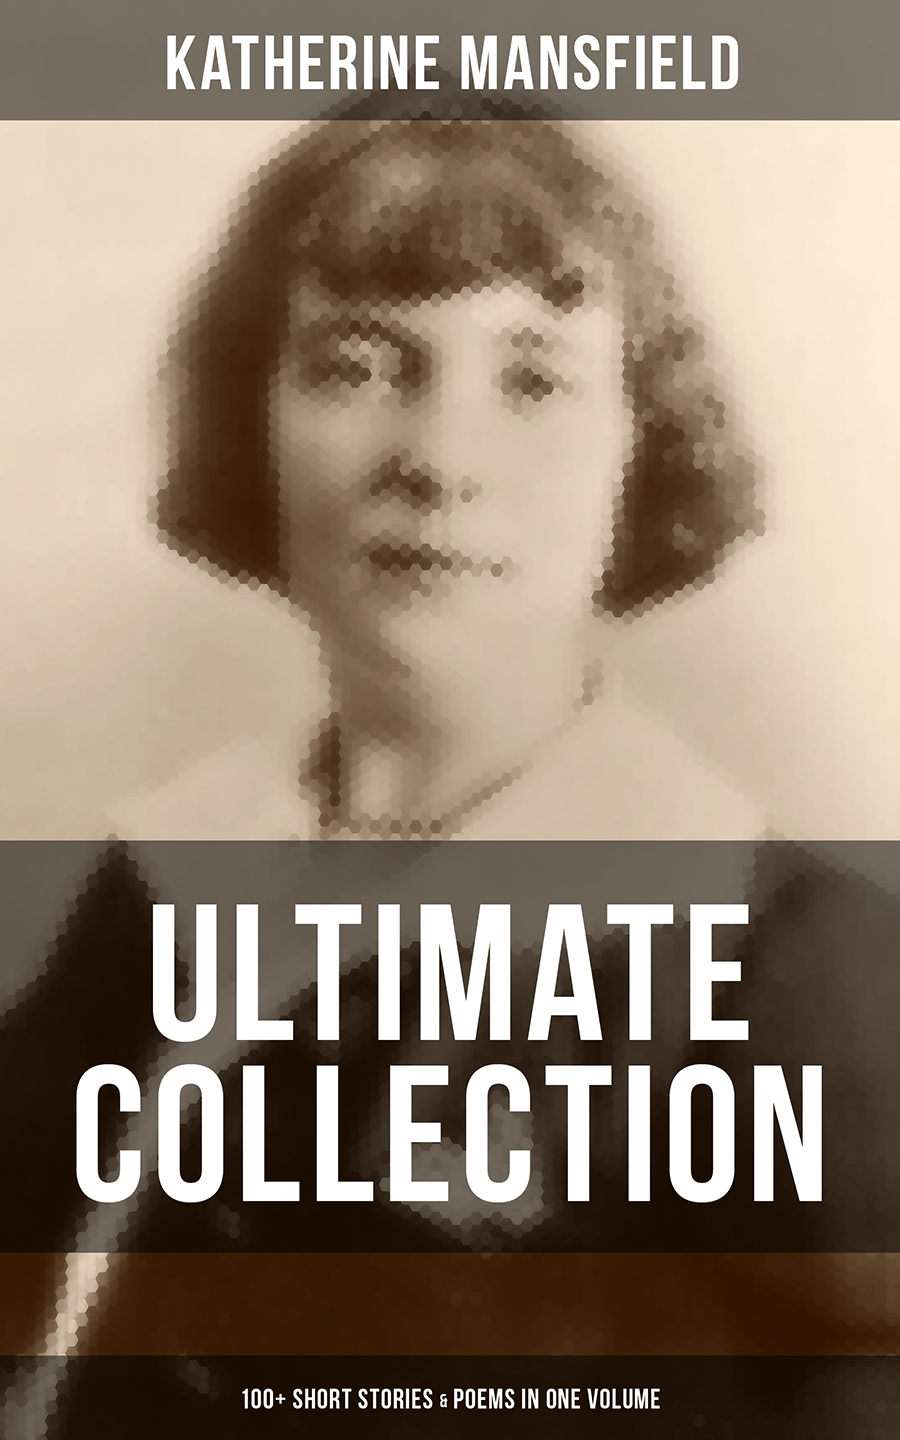 Katherine Mansfield KATHERINE MANSFIELD Ultimate Collection: 100+ Short Stories & Poems in One Volume цена